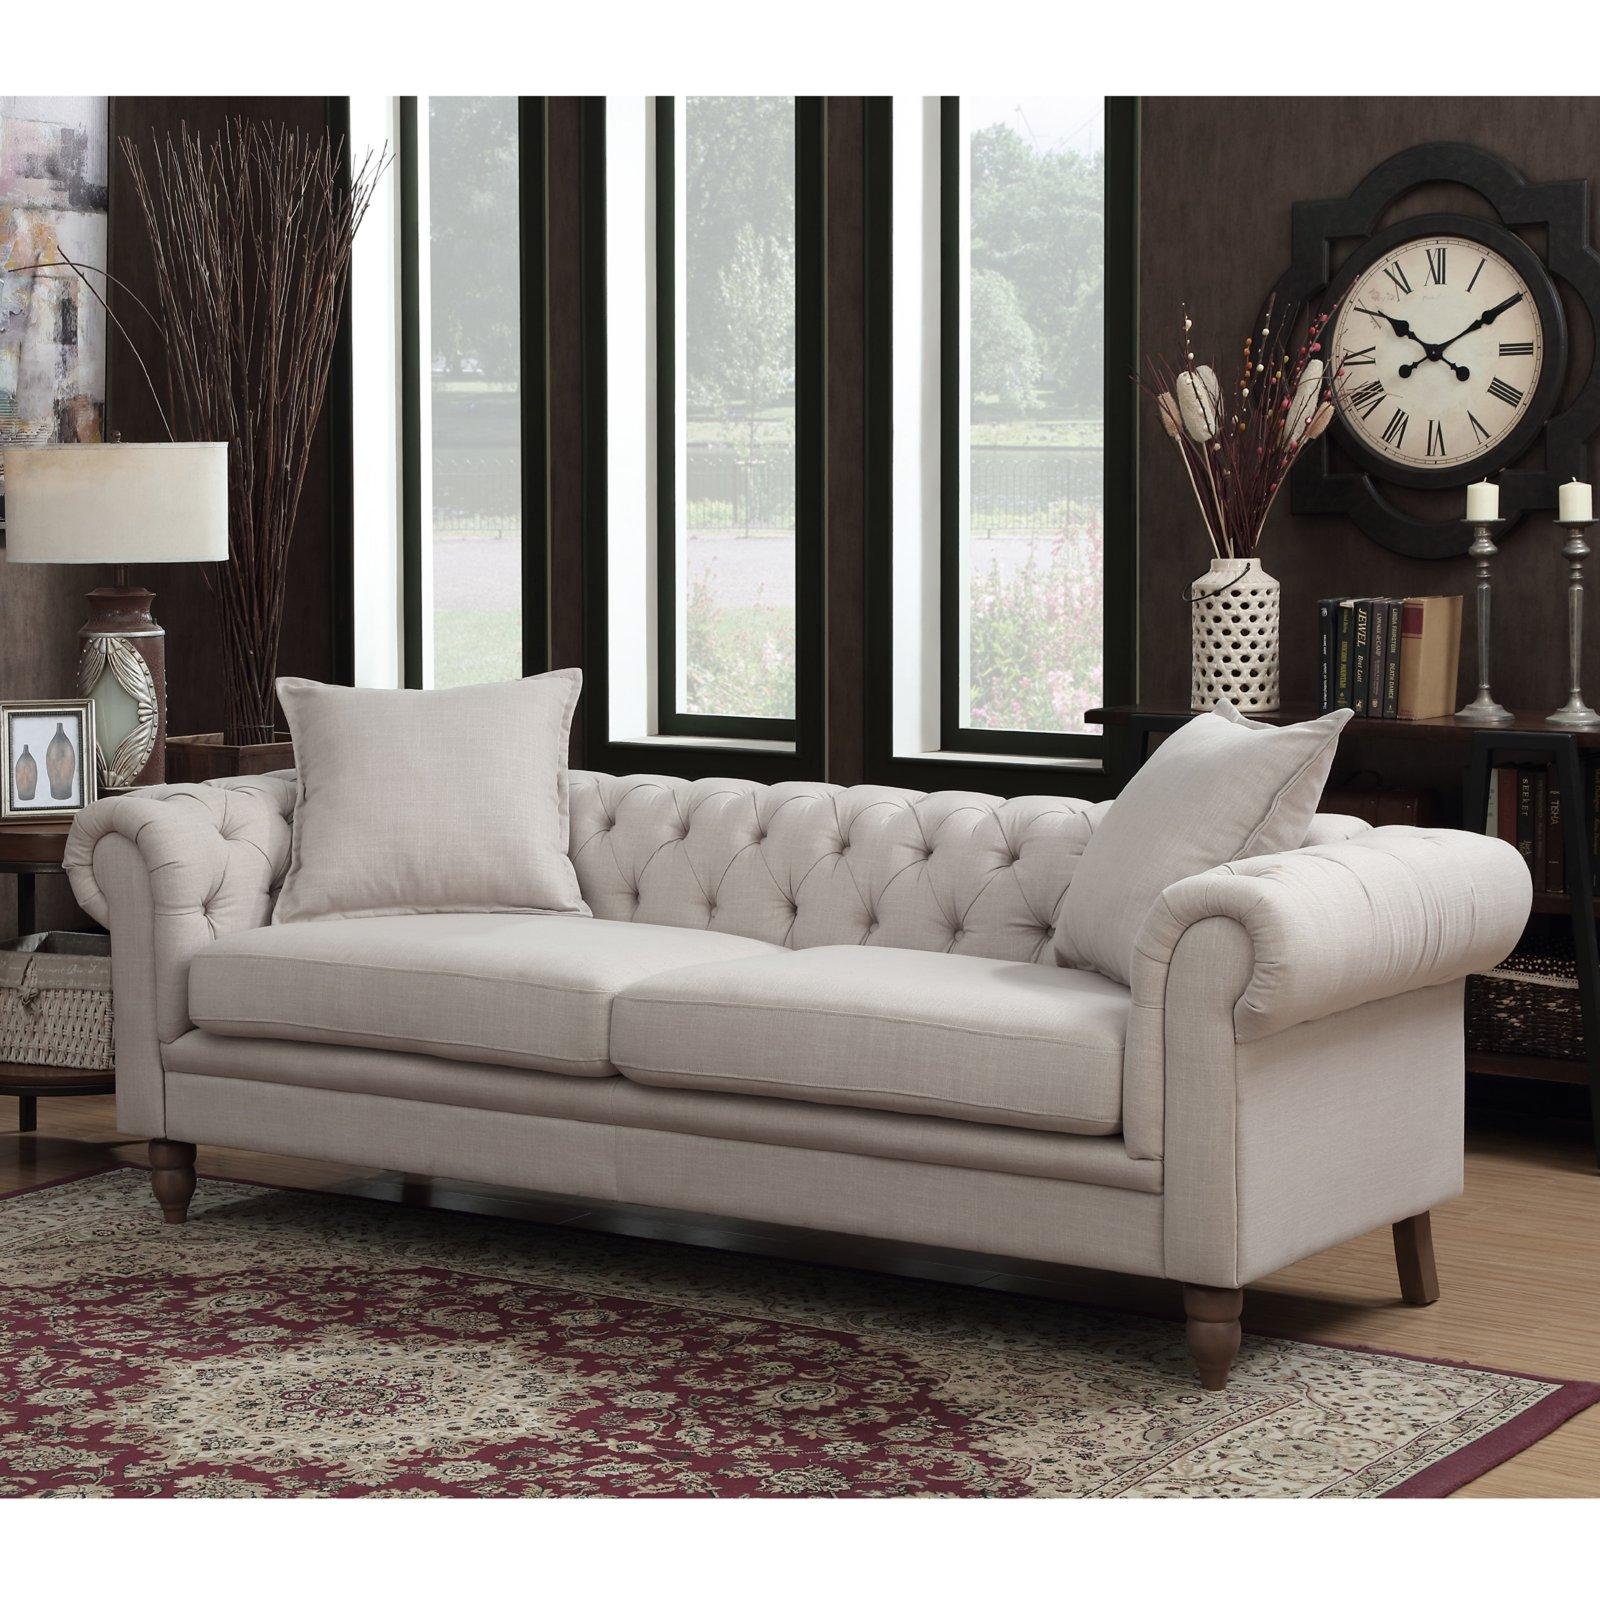 Christies Home Living Juliet Upholstered Button Tufted Chesterfield Sofa